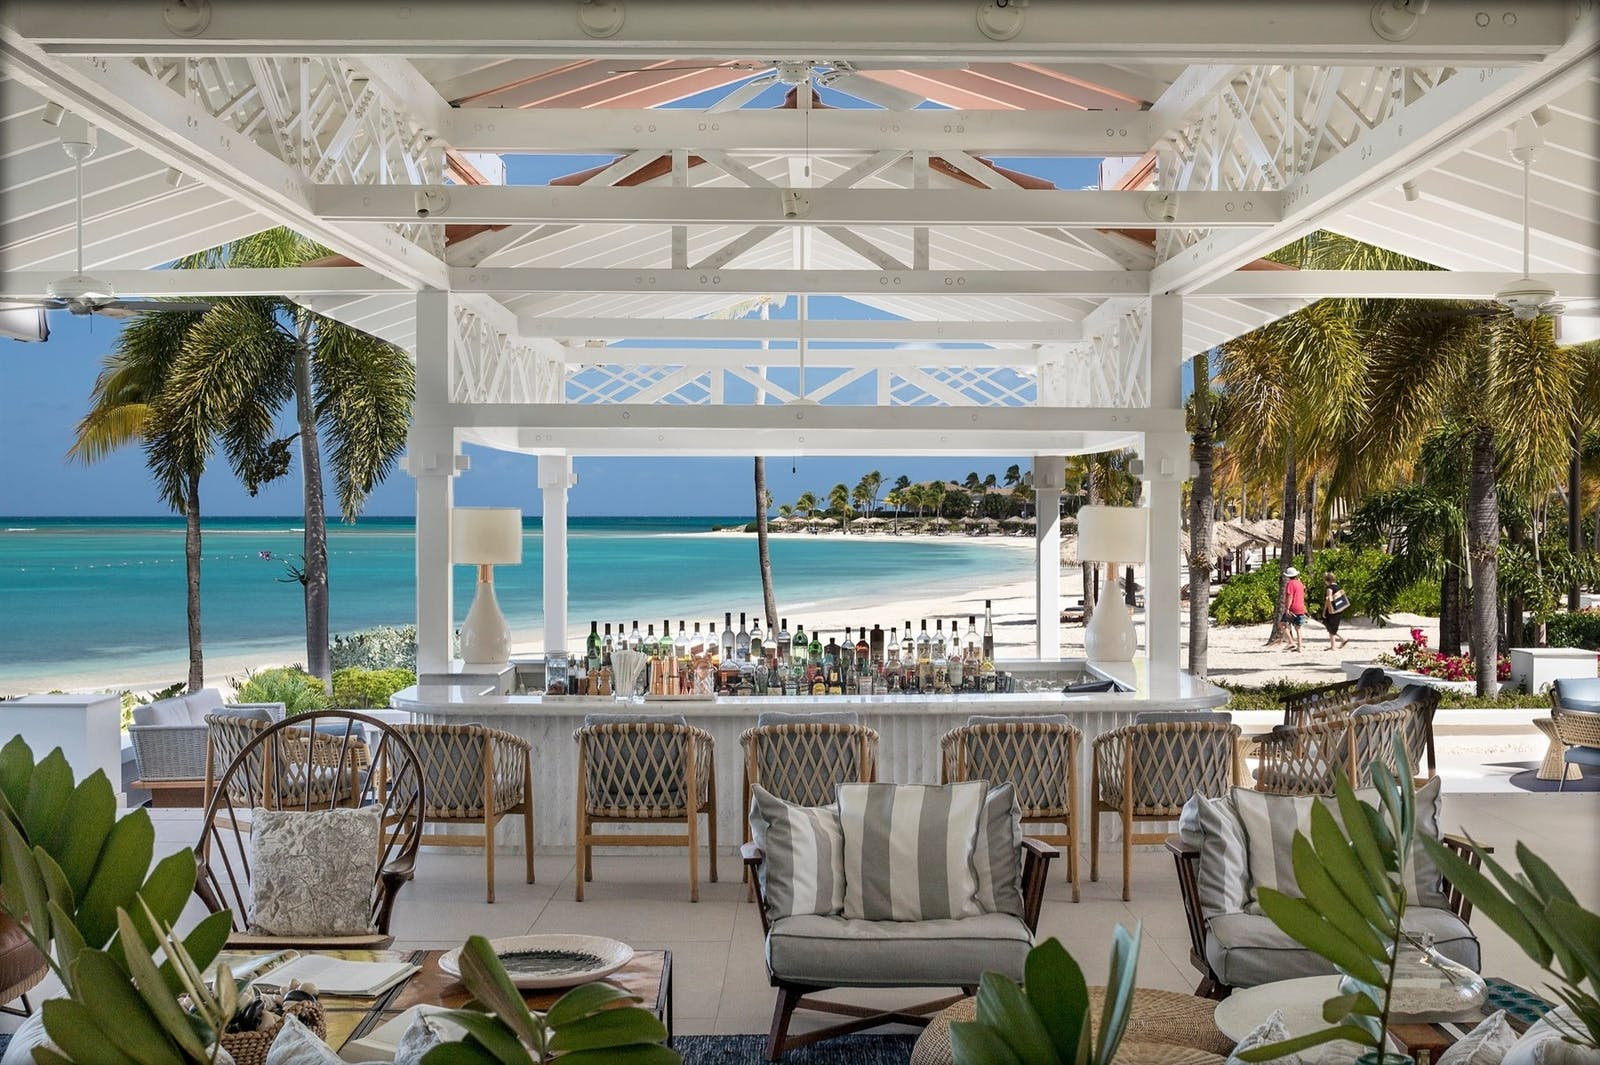 Veranda Bar at Jumby Bay Island, Antigua, Caribbean